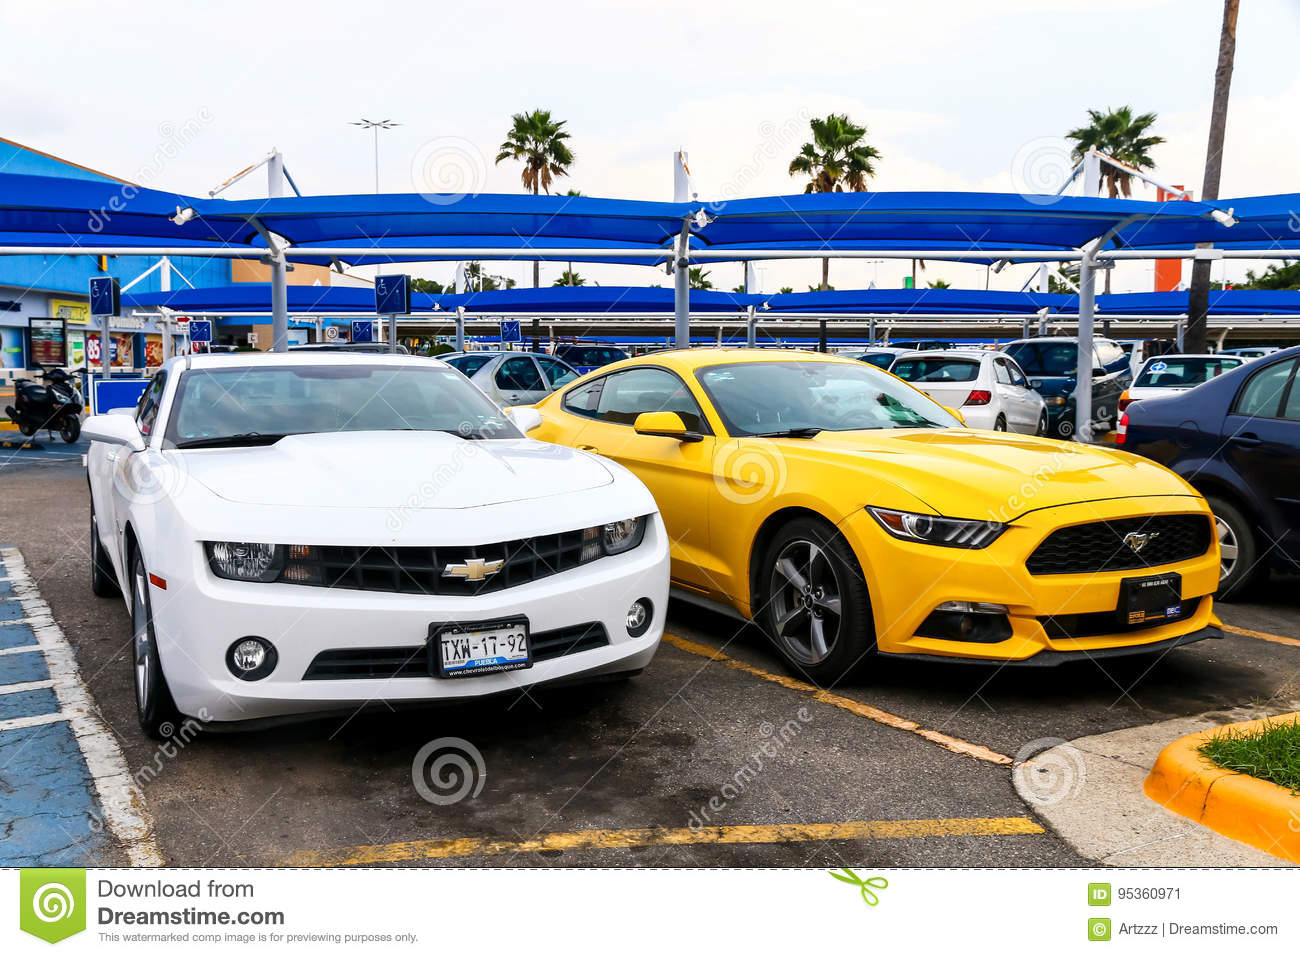 Chevrolet Camaro And Ford Mustang Editorial Photo Image Of Bonnet Ford 95360971